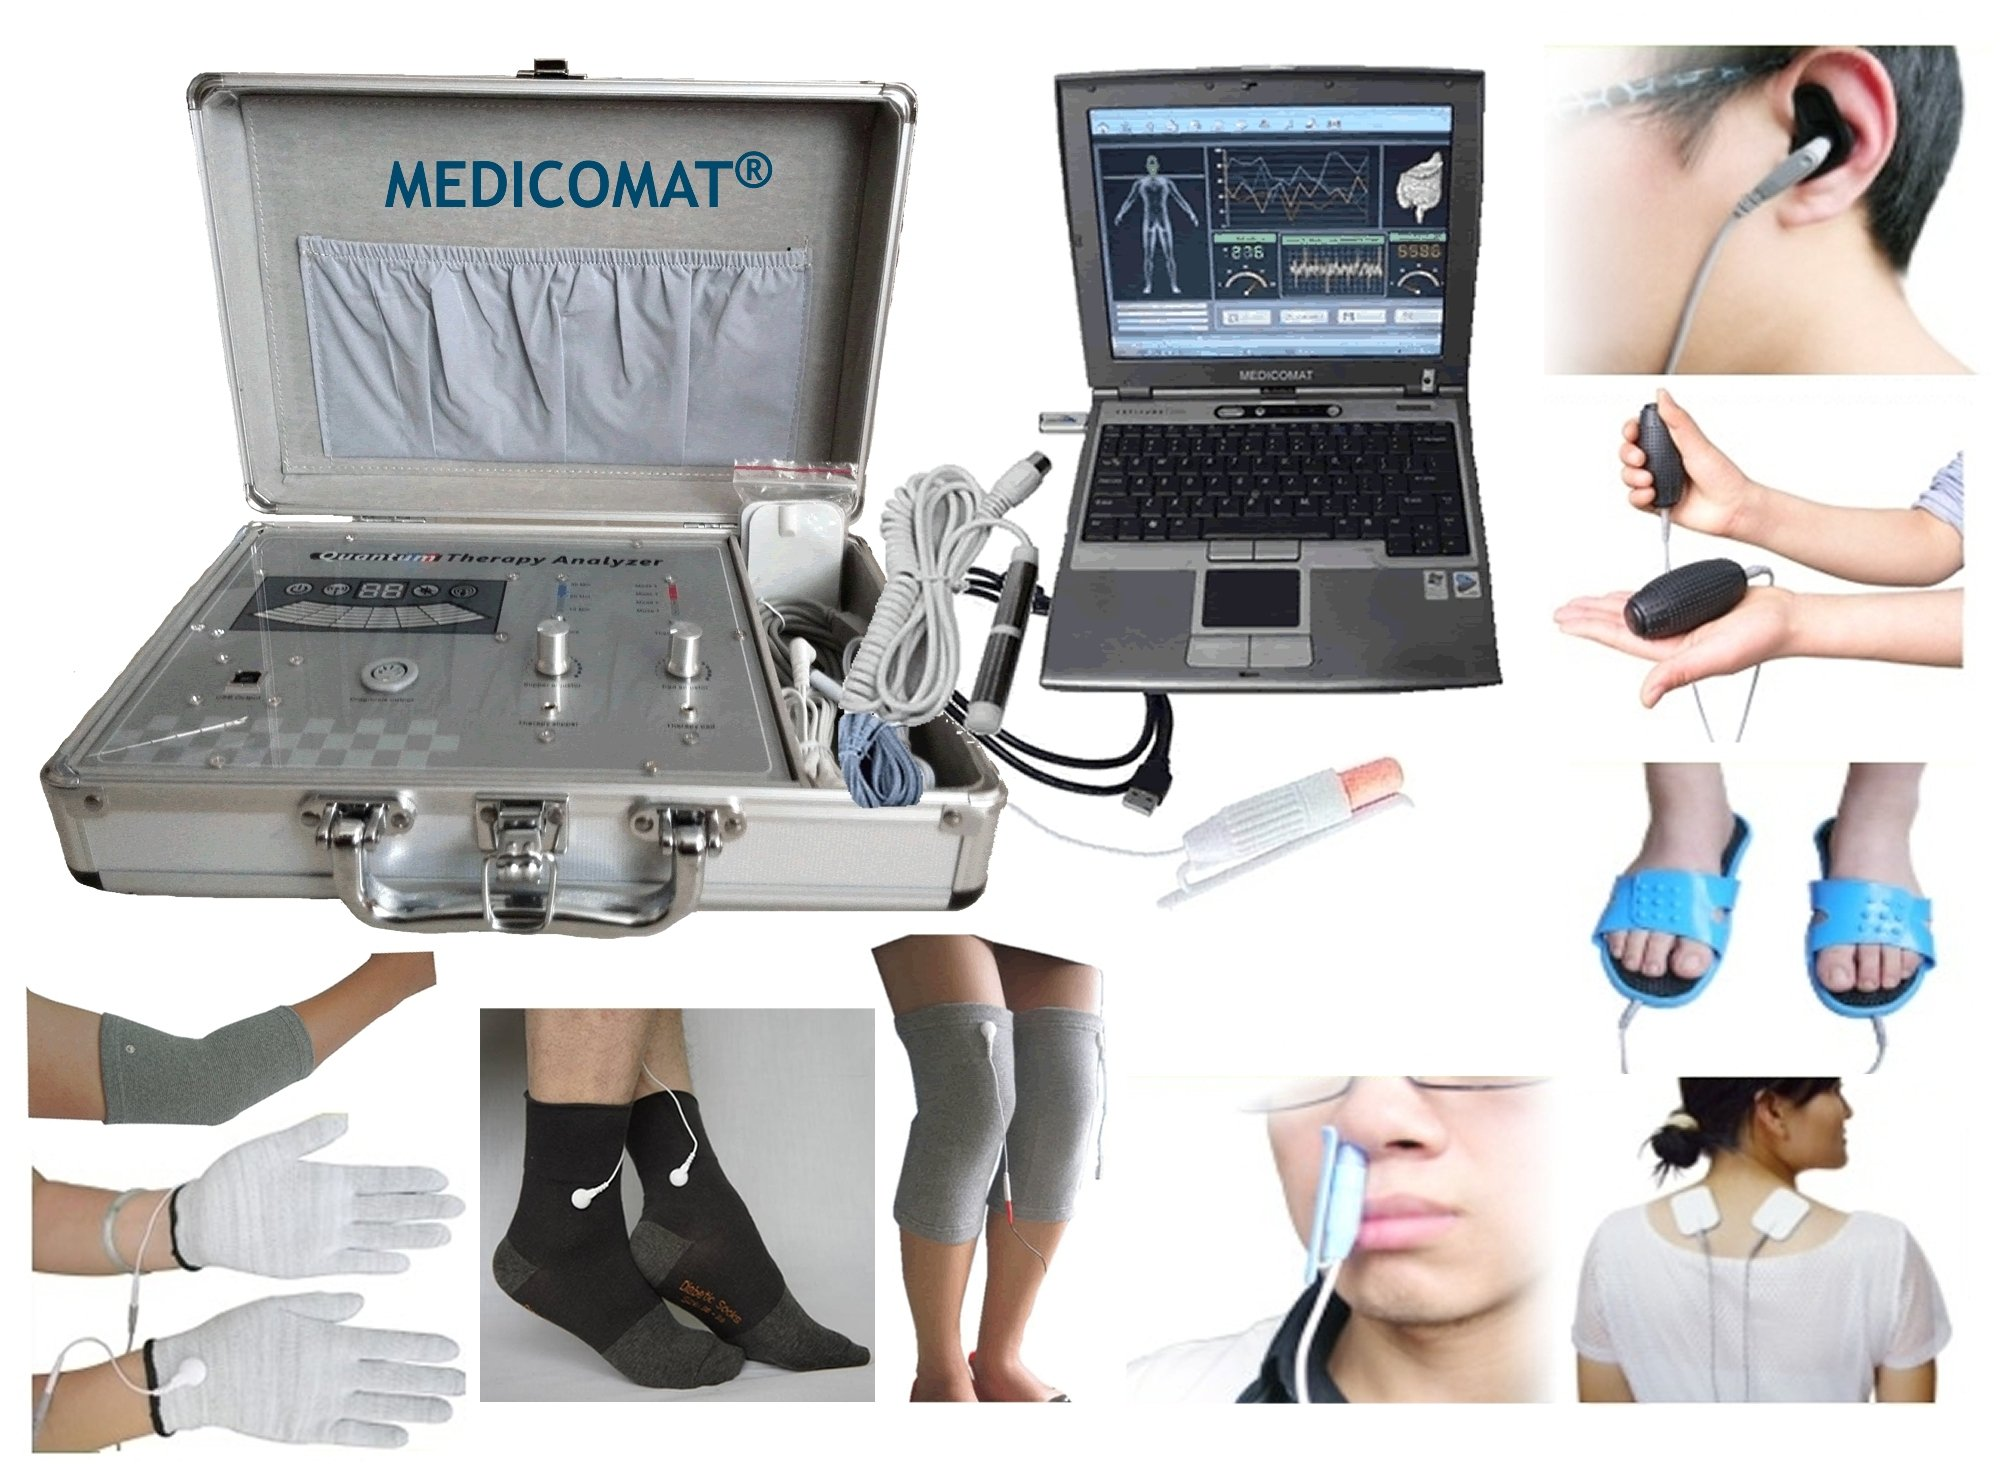 Health Test Assessment Medicomat Health Quantum Analyzer Therapy Computer System by Medicomat (Image #1)